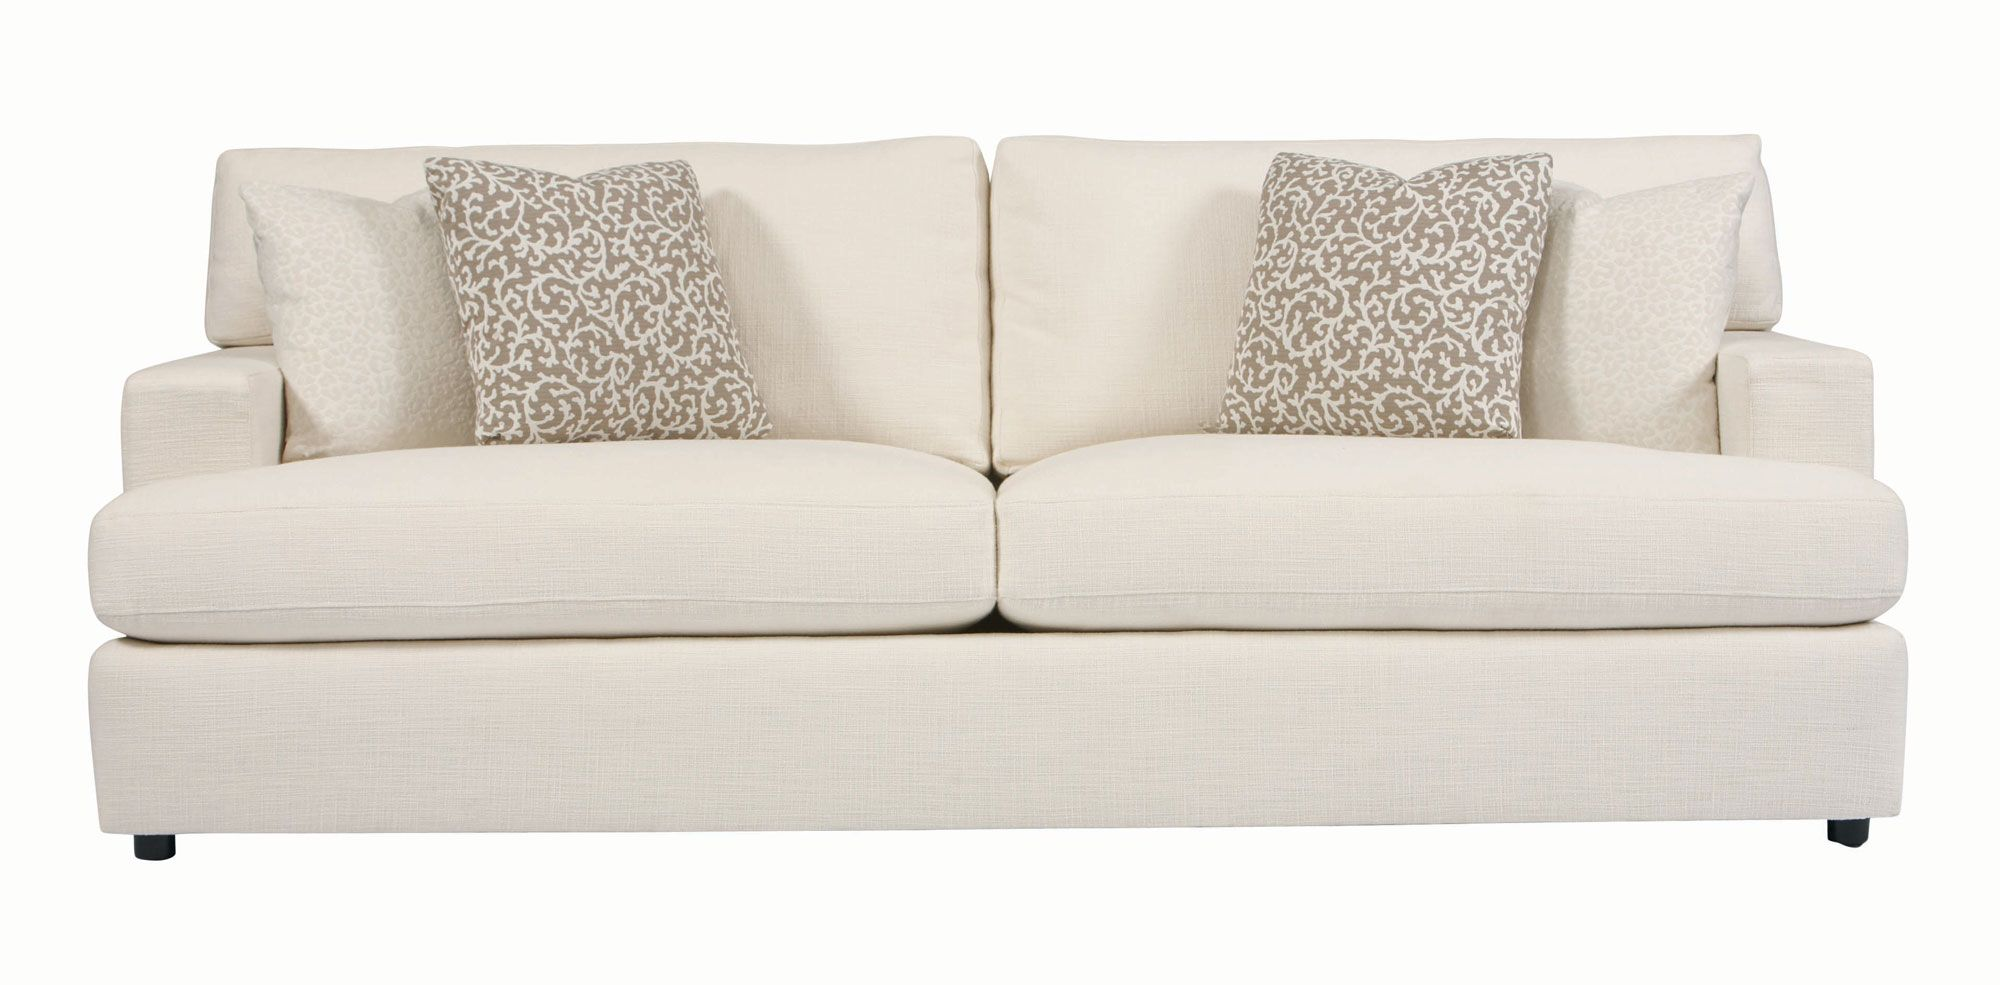 Bernhardt Ryden Sofa N7387 For the Front Sitting Room